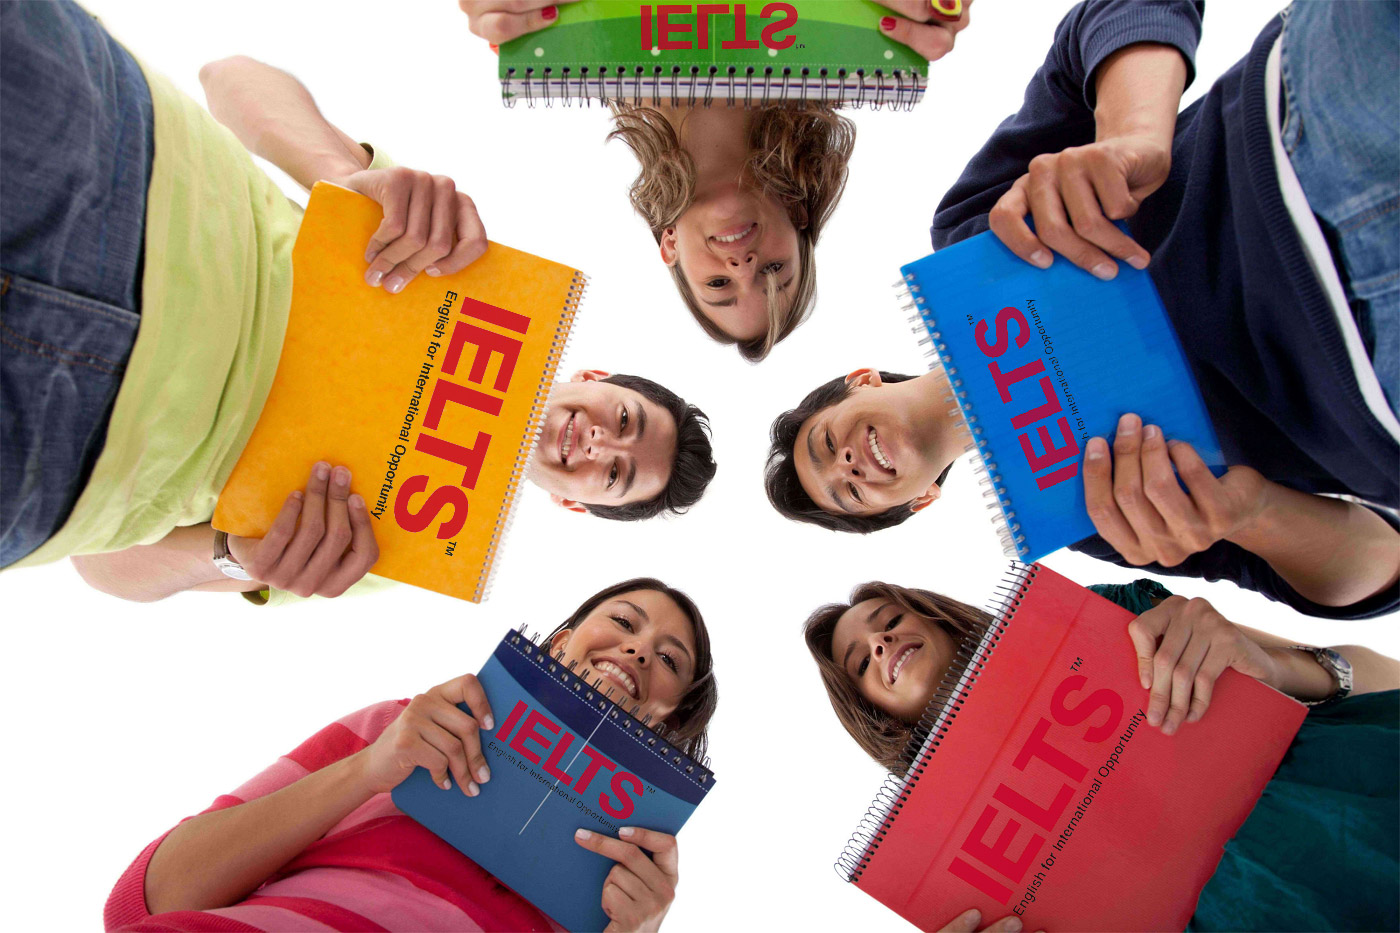 students-holding-books1.jpg